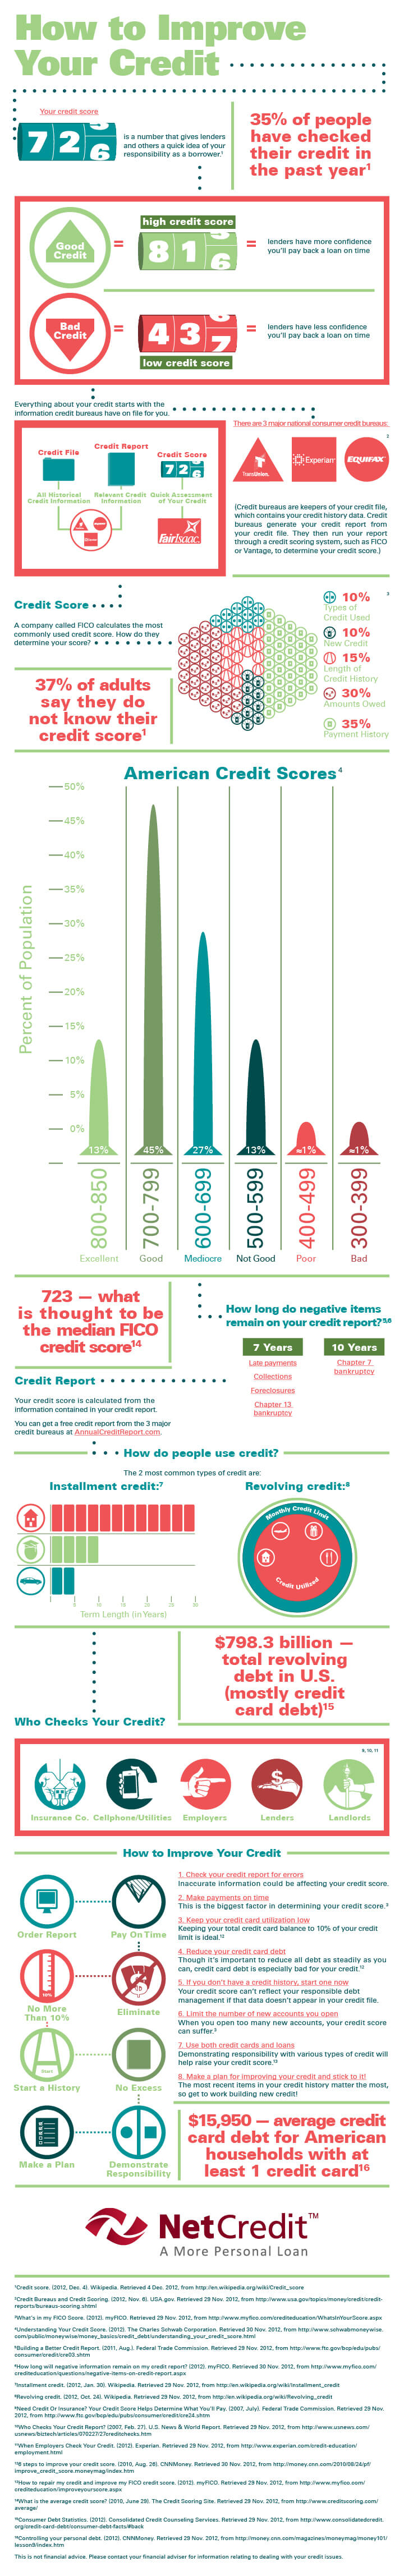 NC_ImprovingCredit_Infographic_Entire_CM_2-4-13